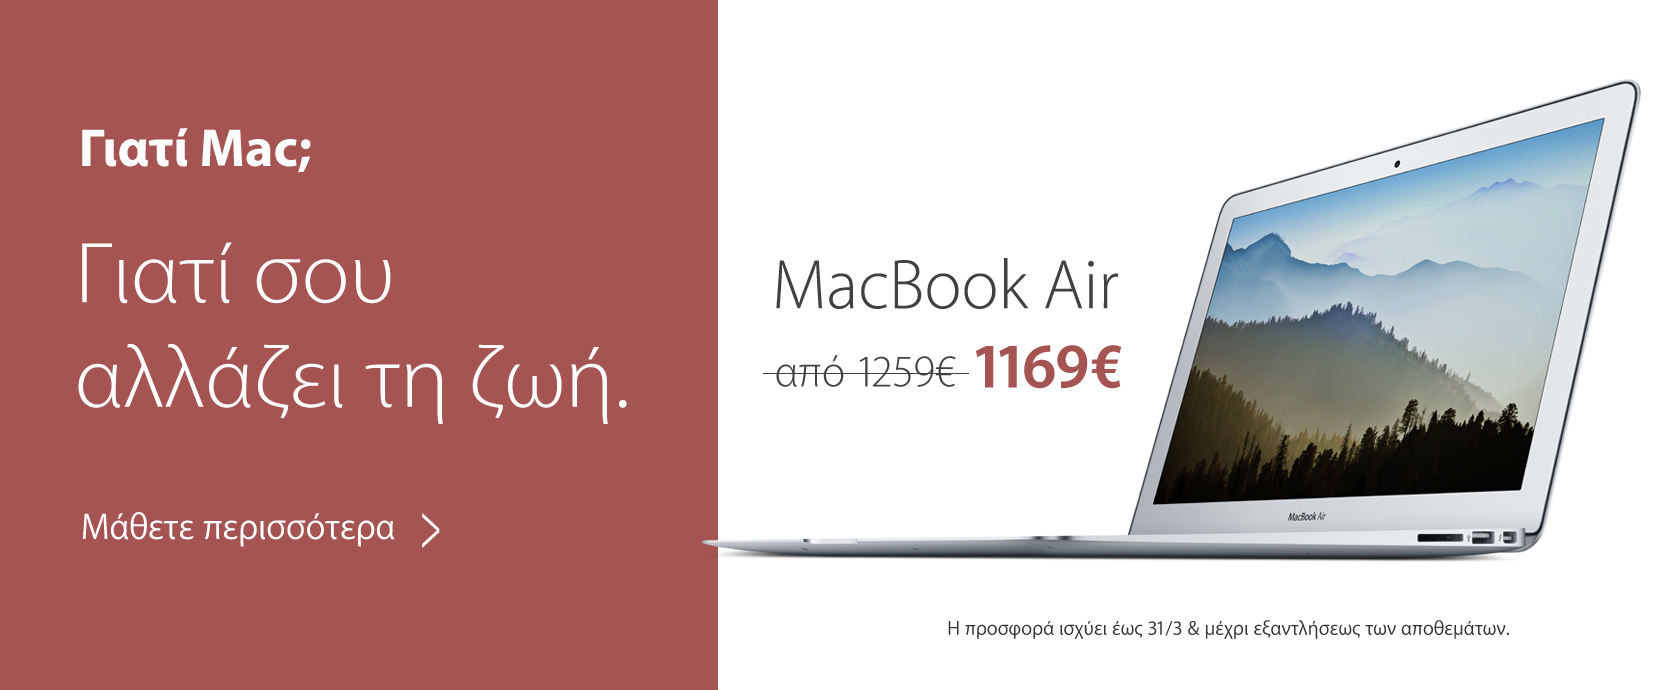 MacBook Air Promotion